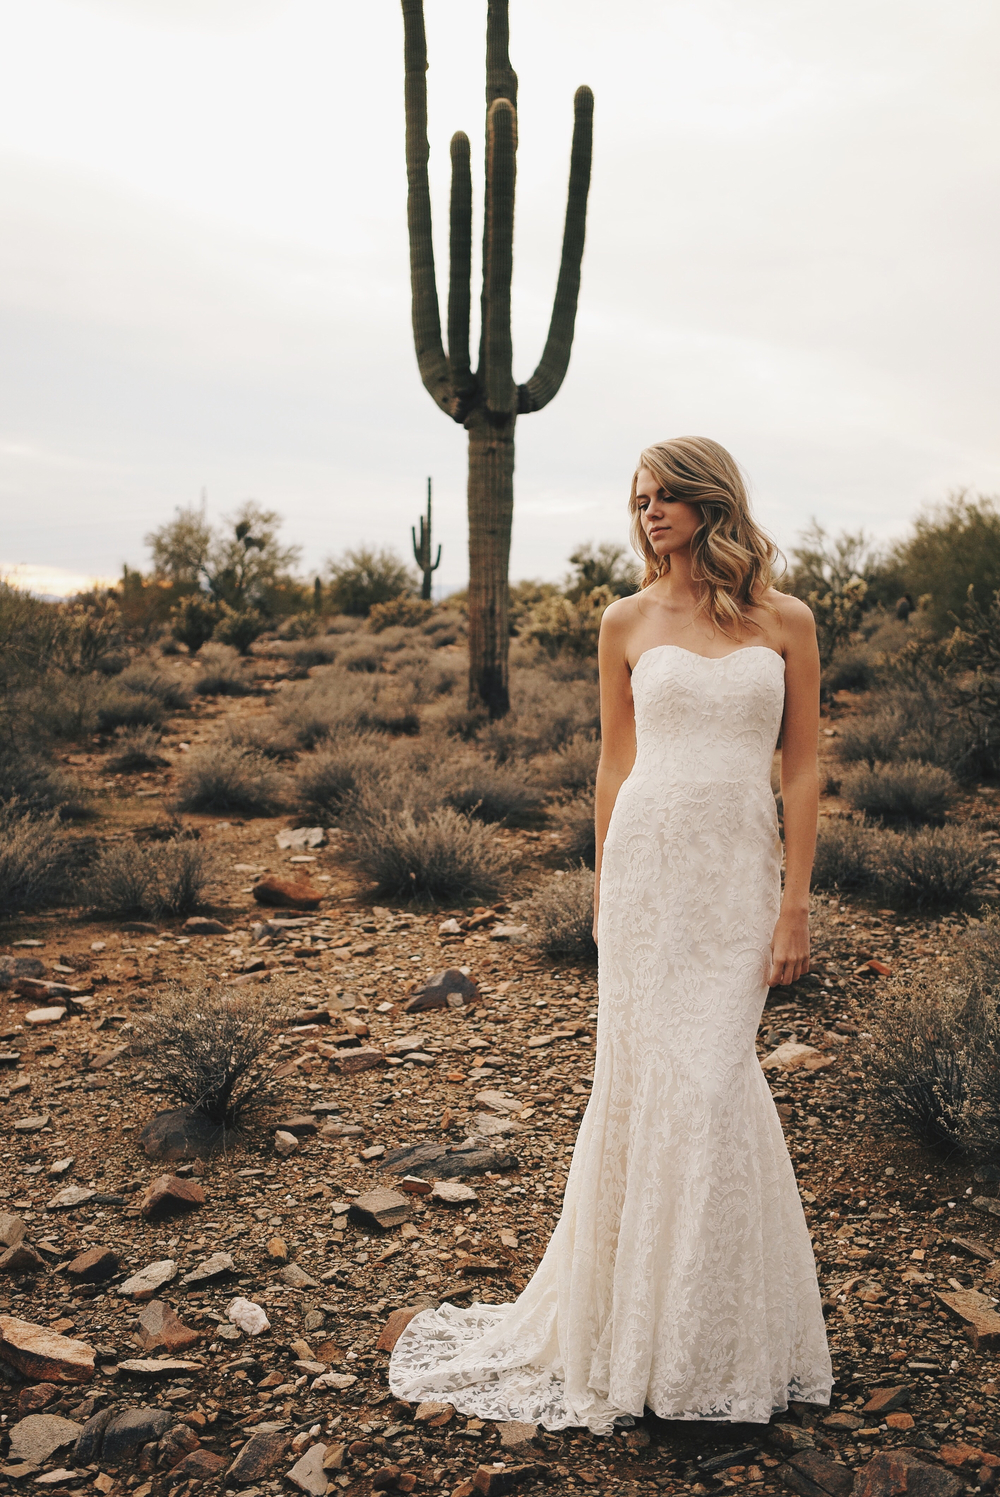 lyric bridal gown by tanya anic photography by austin kehmeier  stylist solandra helg 2.jpg